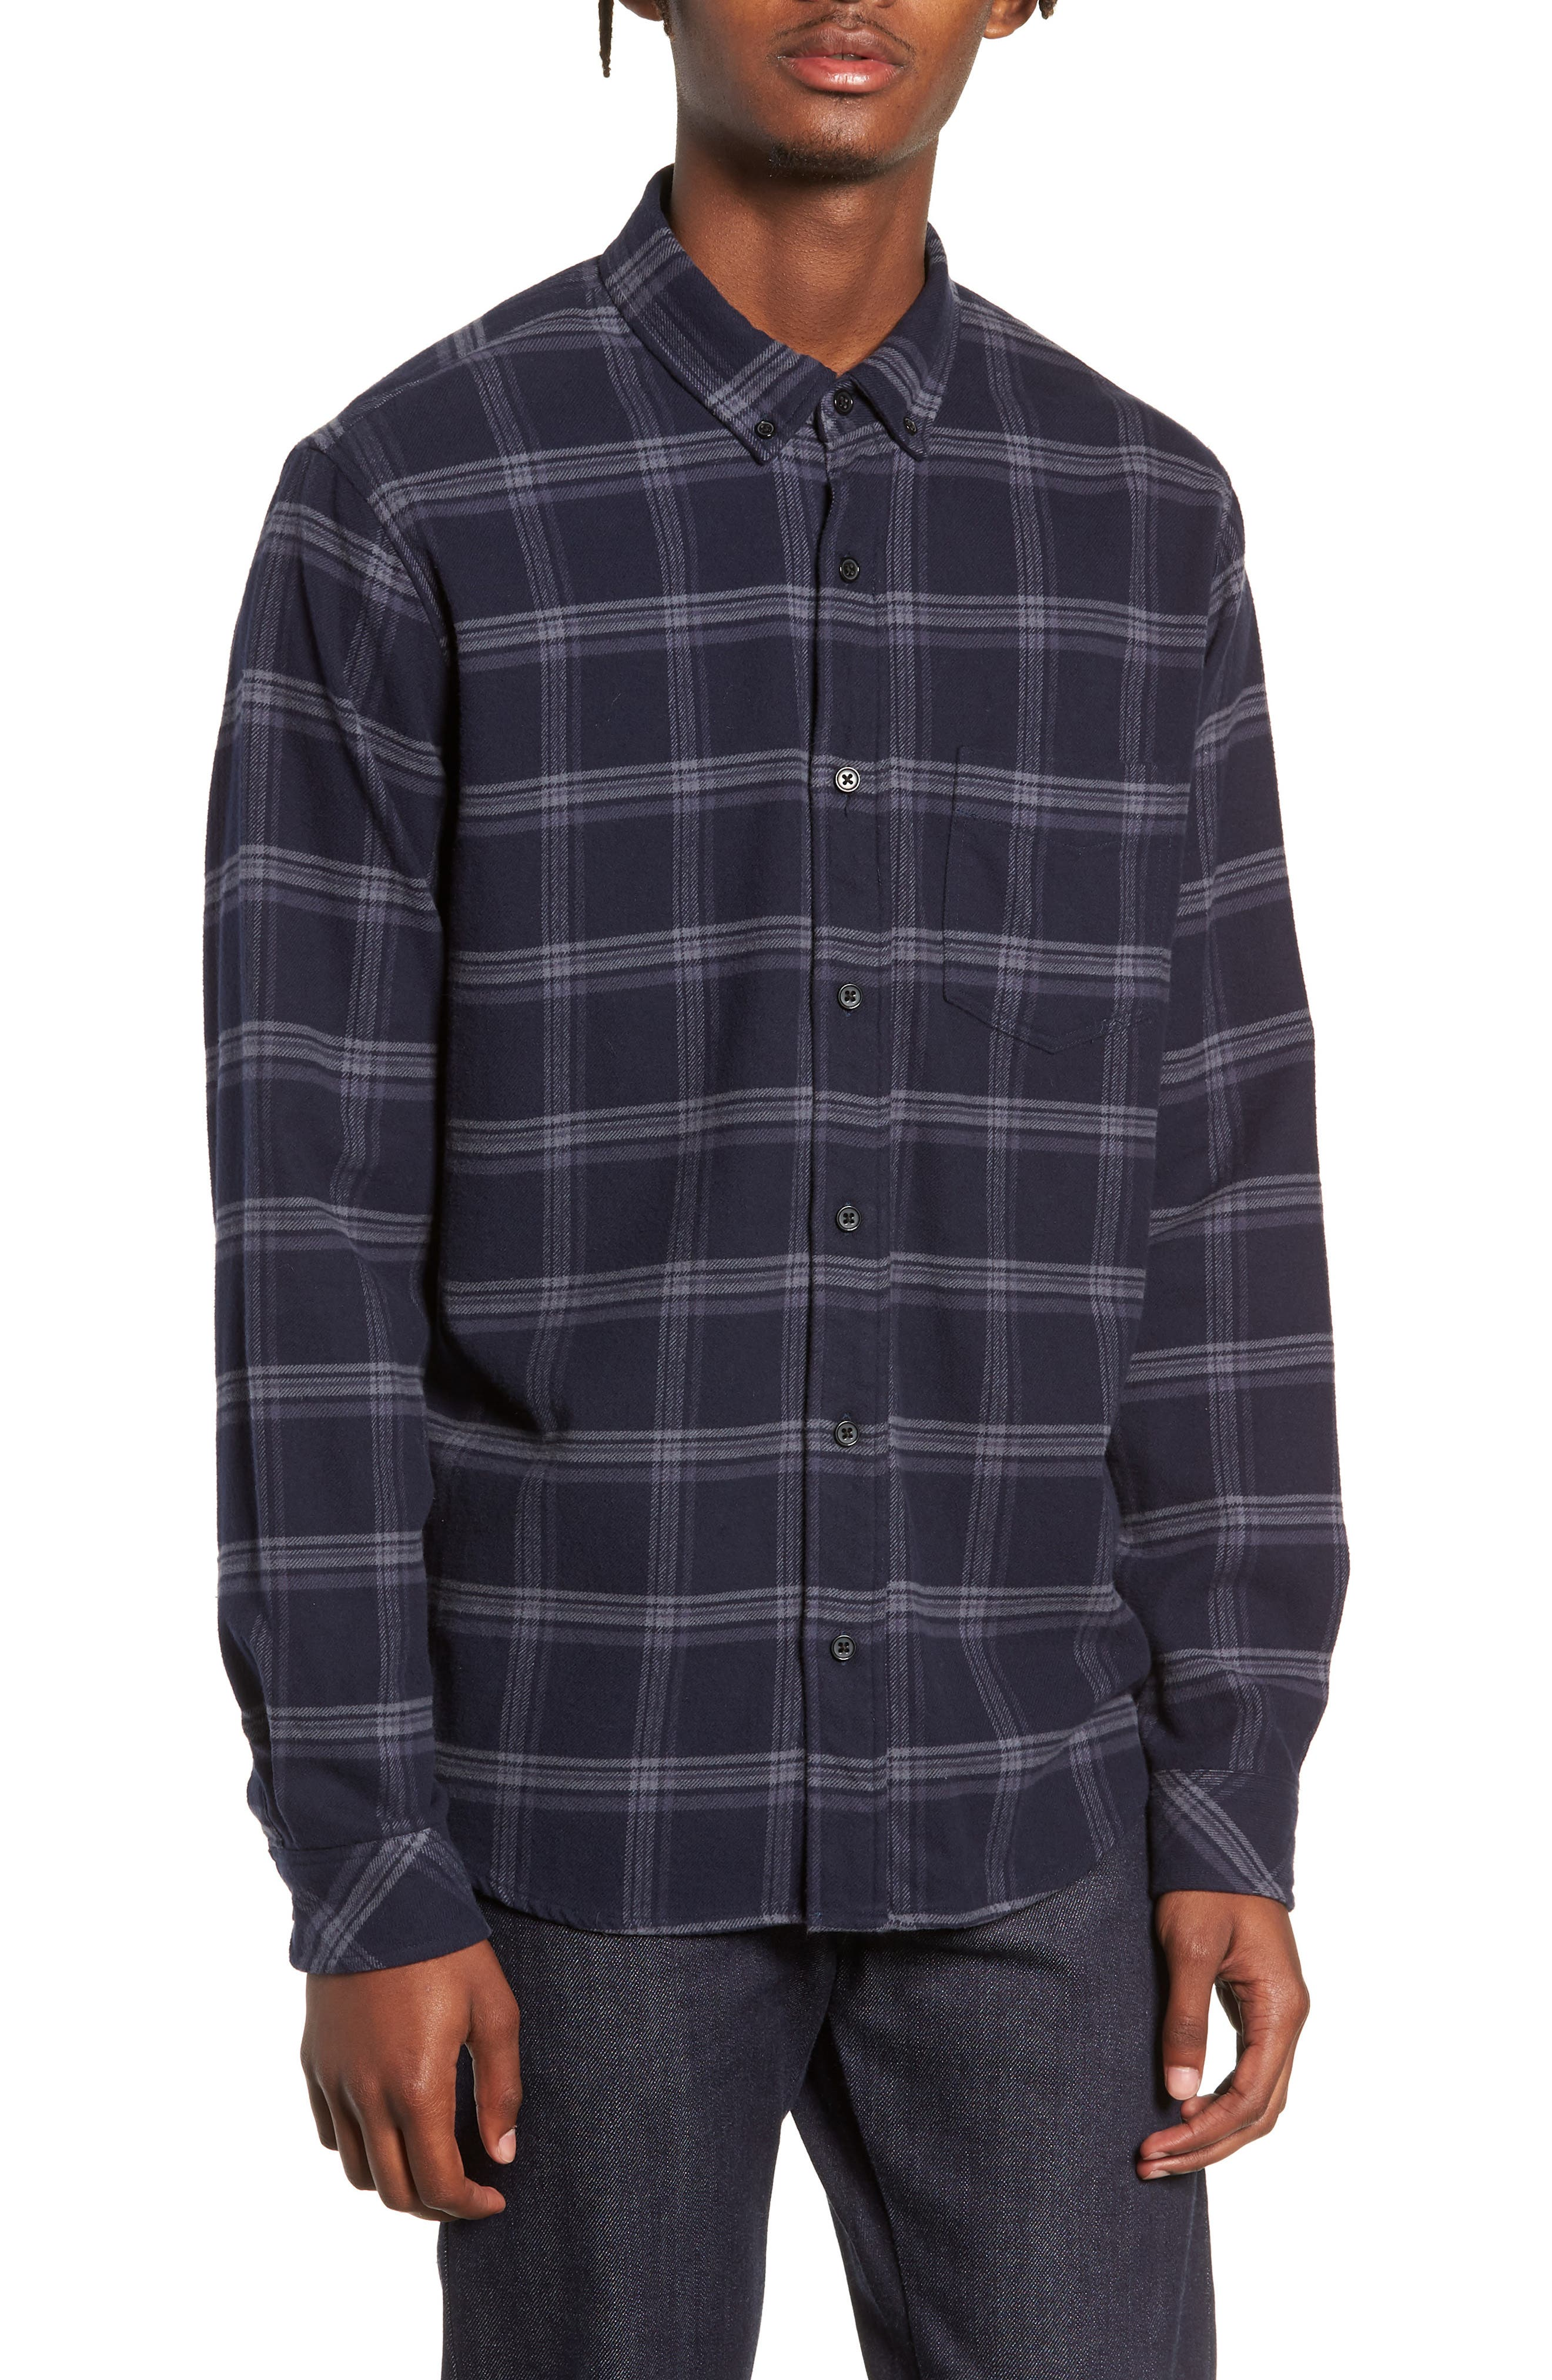 Forrest Slim Fit Plaid Flannel Sport Shirt,                         Main,                         color, NAVY/HEATHERED CHARCOAL